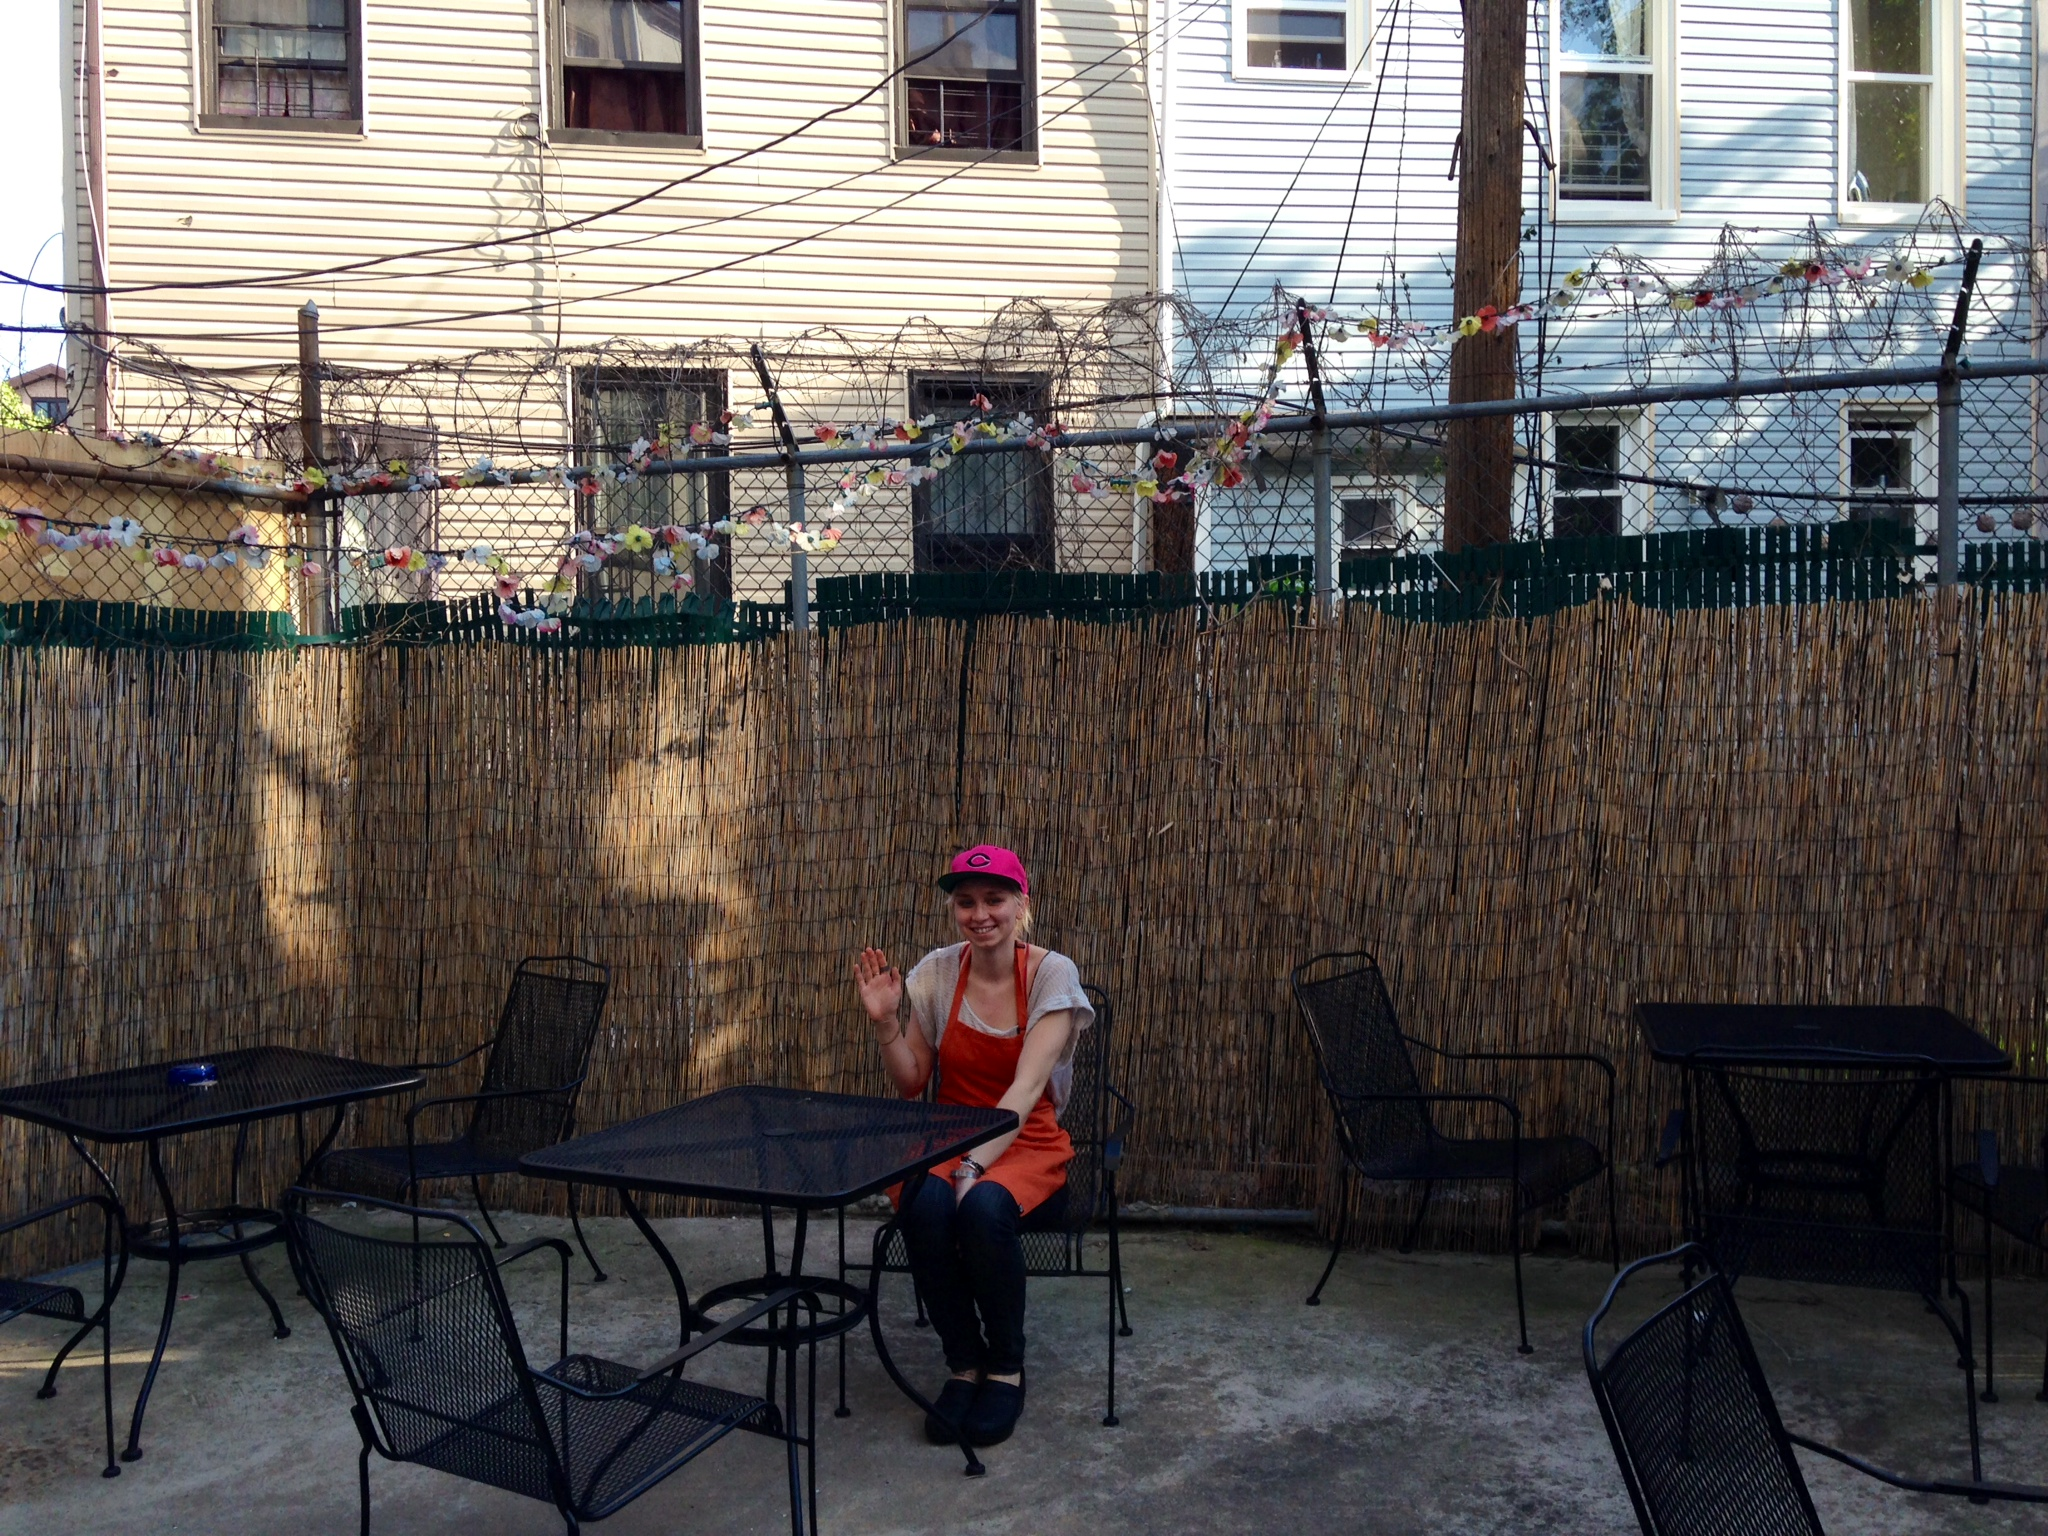 Jennifer Lubanko, who works at Bloom, welcomes all to partake in the spacious backyard!